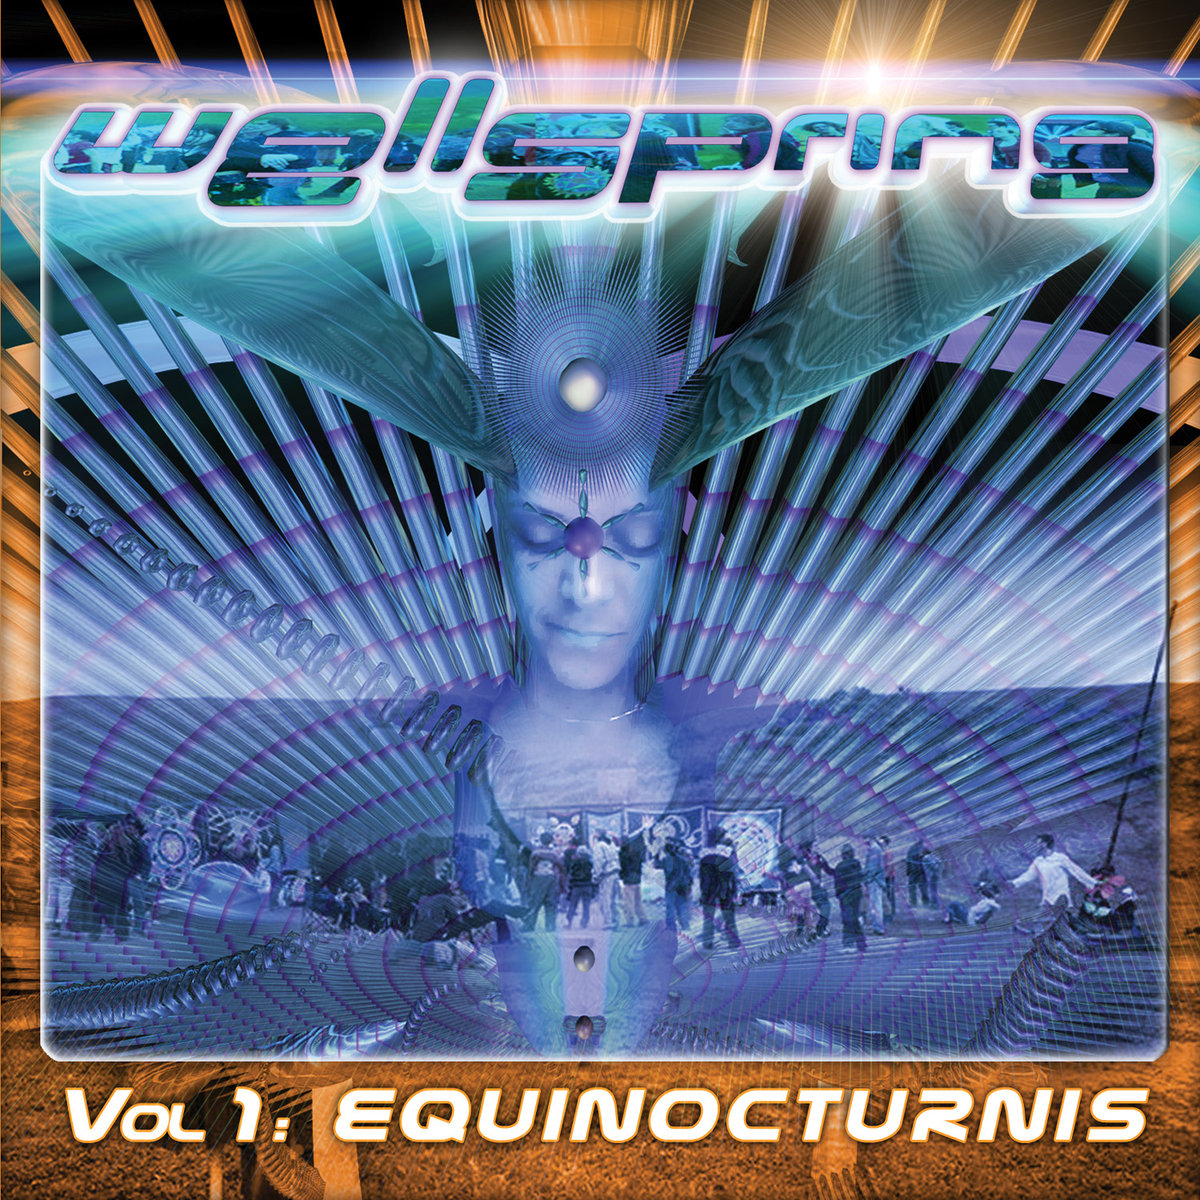 Mindwarped - Darkmatter (Remix) @ 'Various Artists - Wellspring Vol. 1: Equinocturnis' album (electronic, goa)